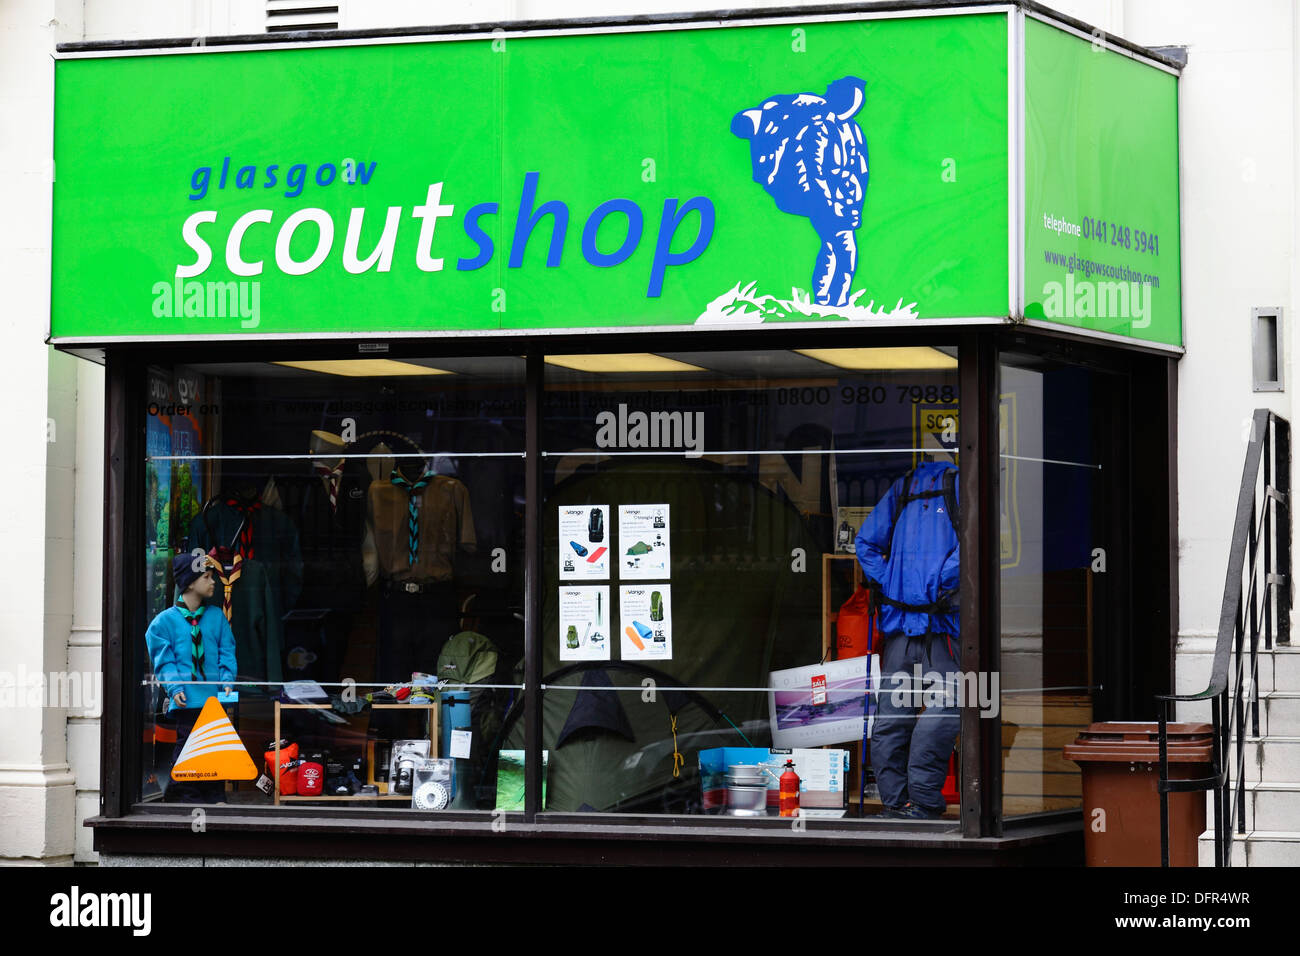 The Scout Shop in Glasgow city centre, Elmbank Street, Scotland, UK - Stock Image